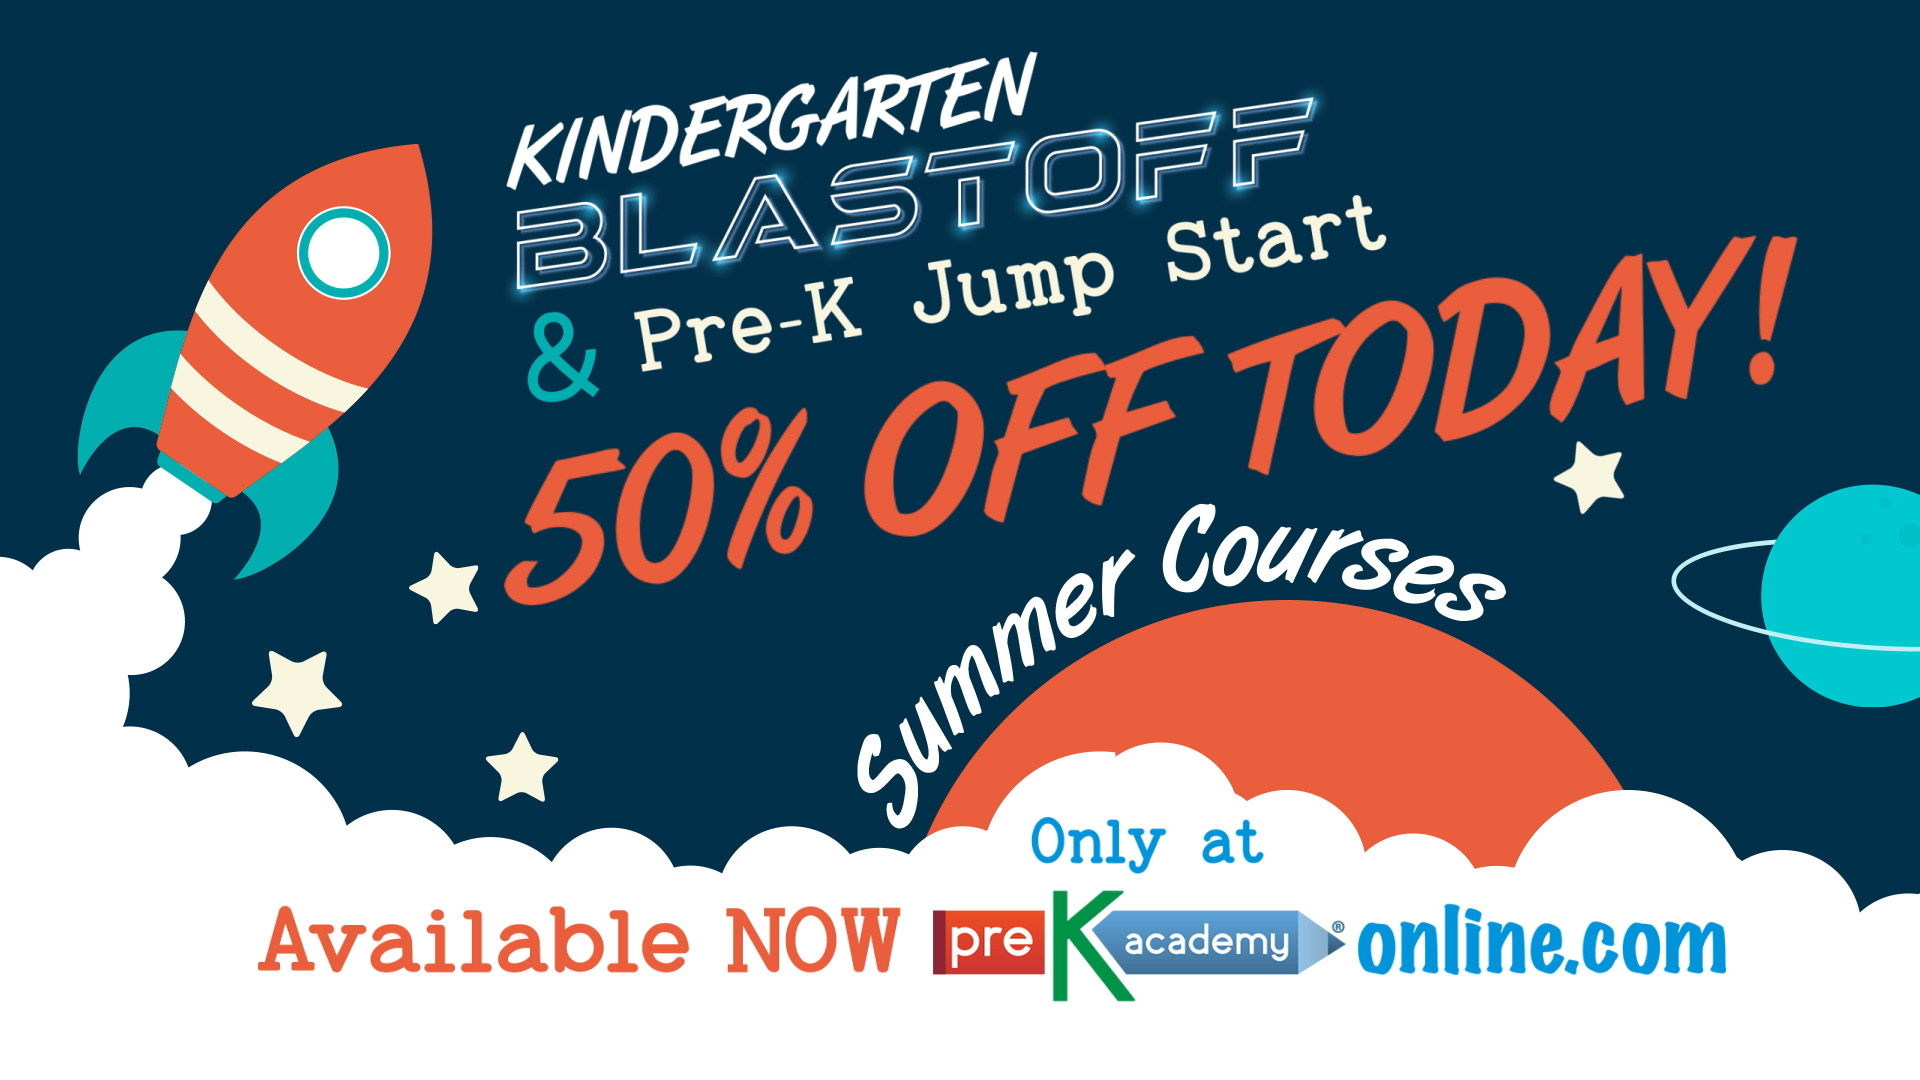 KindergartenBlast-50off